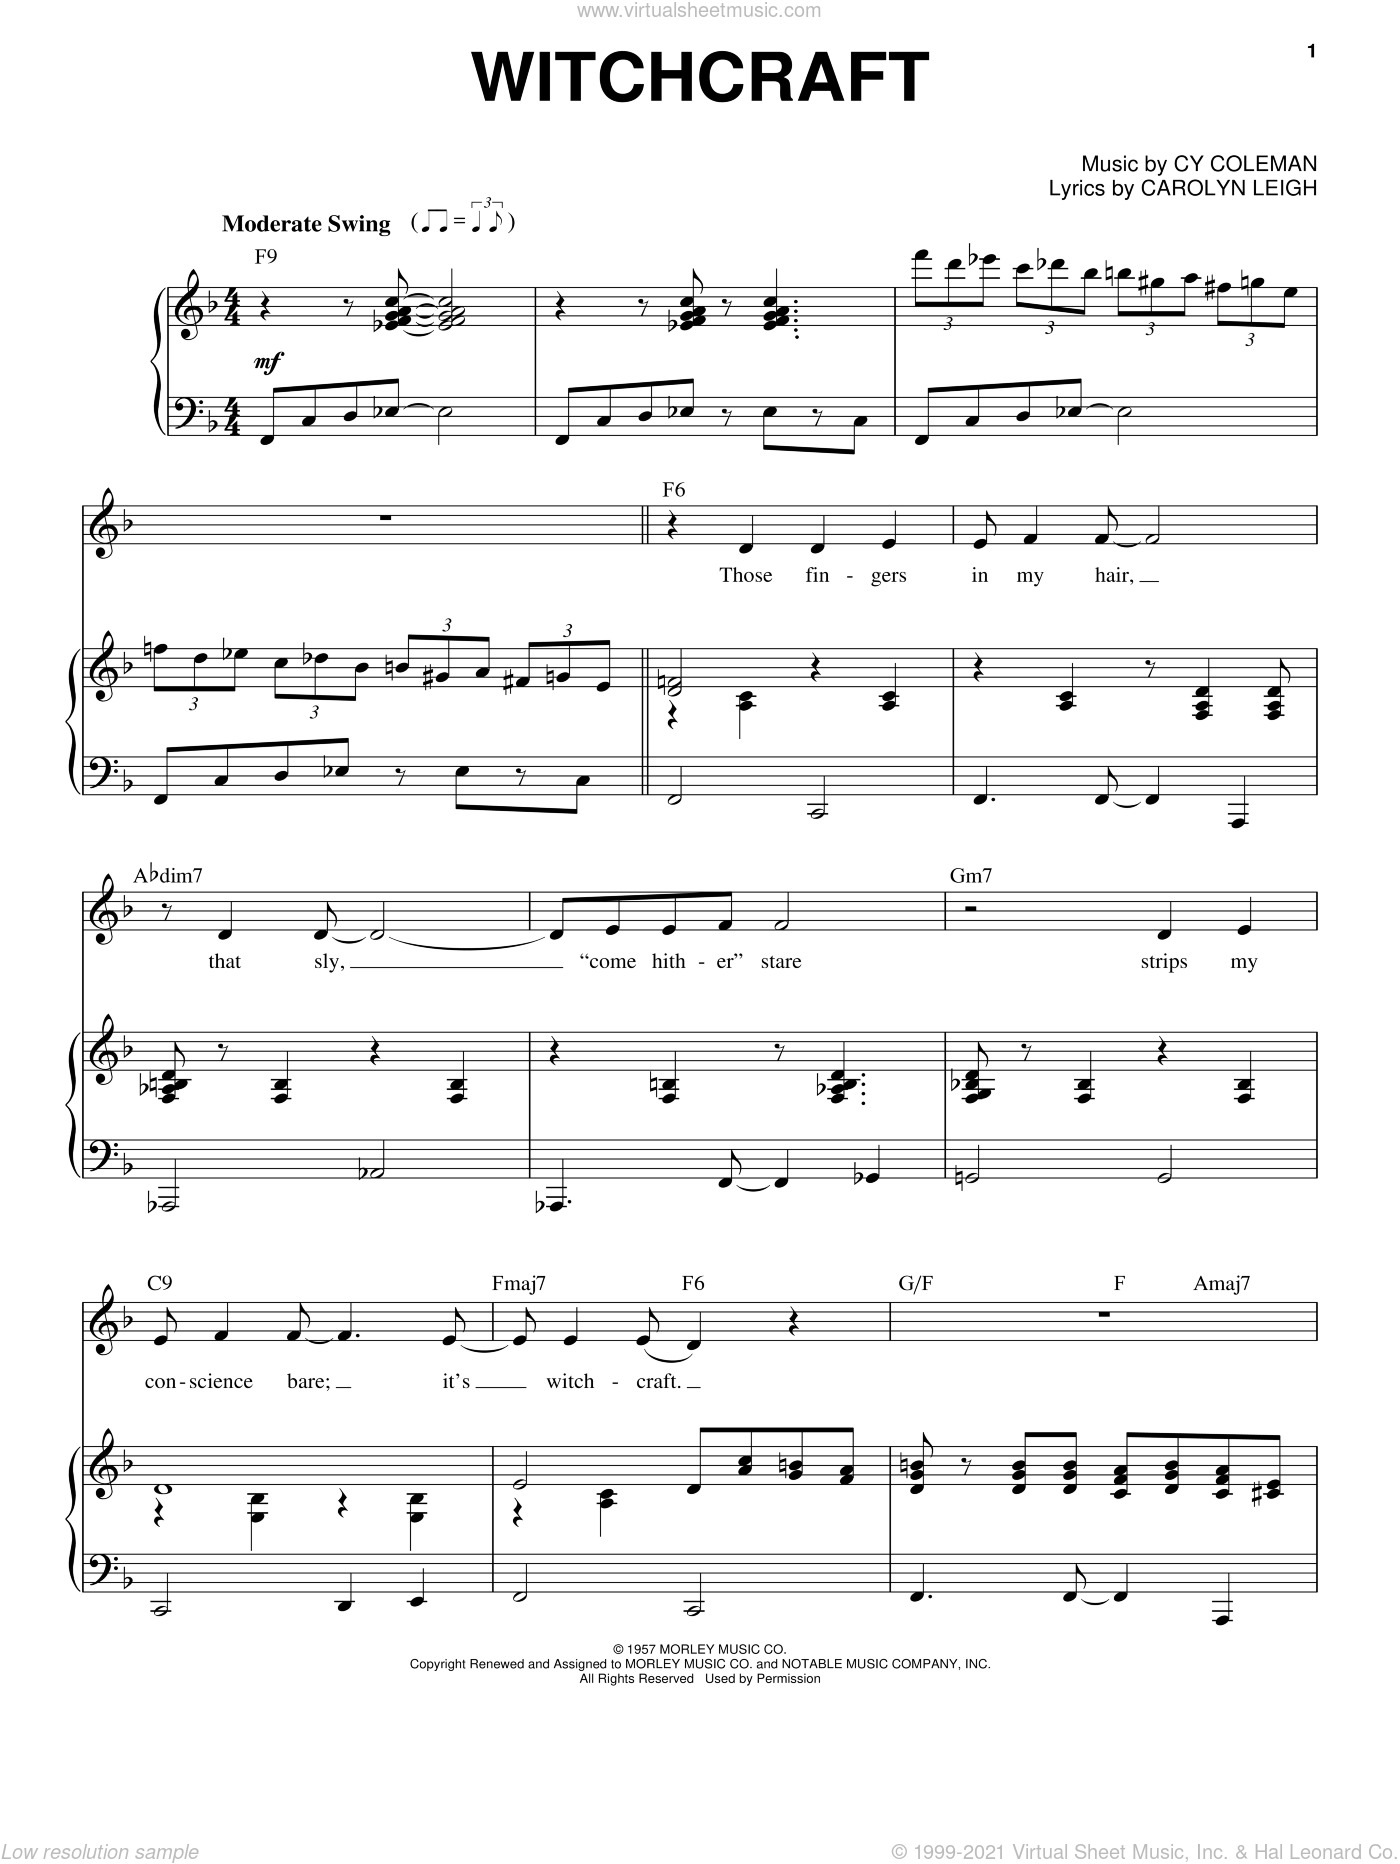 Witchcraft sheet music for voice and piano by Cy Coleman